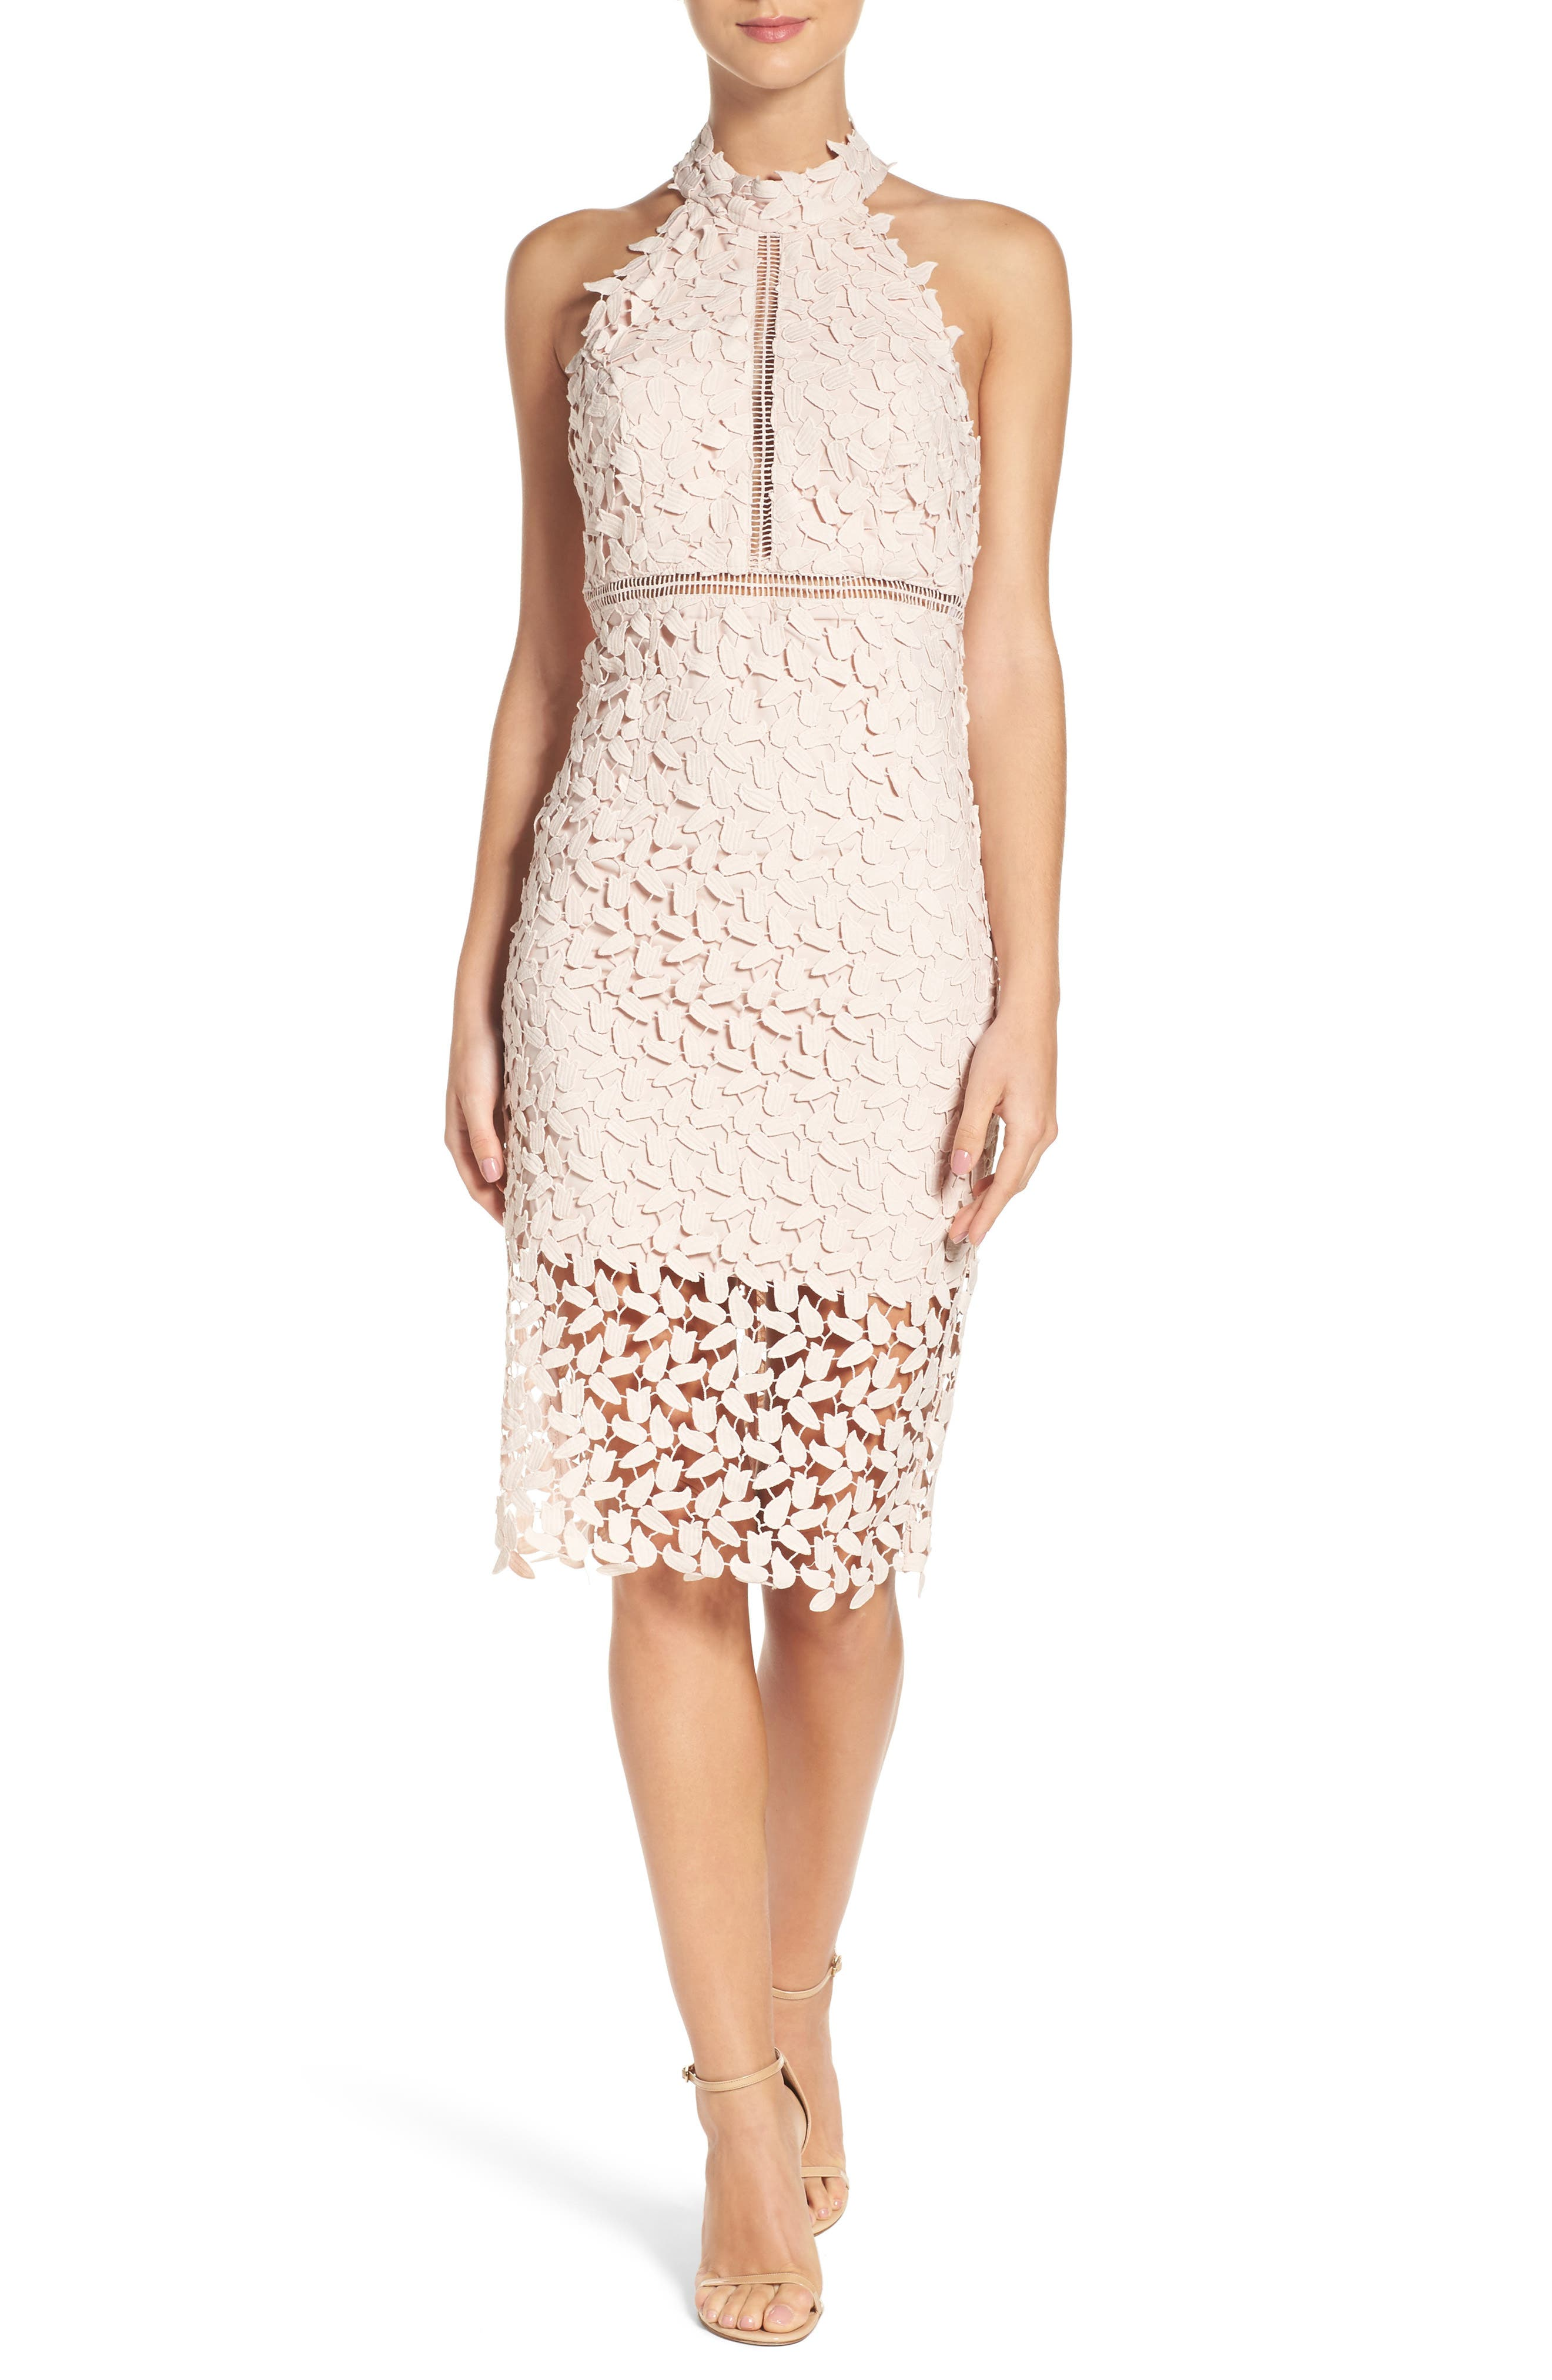 Lace Cocktail & Party Dresses: Sequin, Lace, Mesh & More | Nordstrom